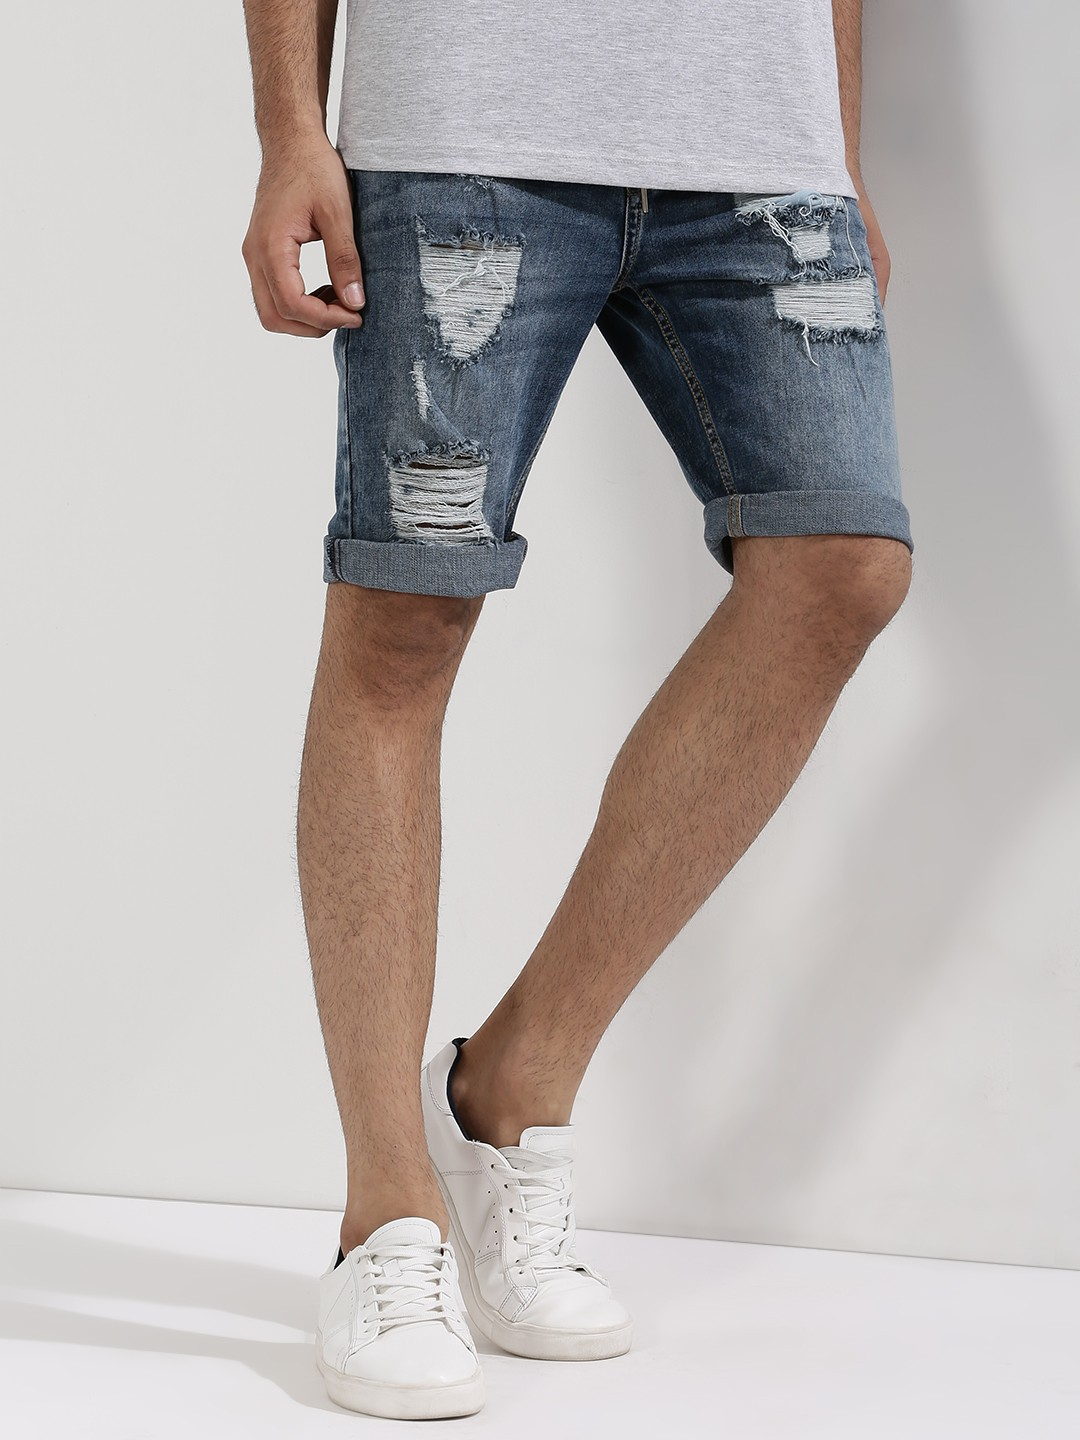 Buy ADAMO LONDON Heavy Distress Denim Shorts For Men - Men's Blue ...